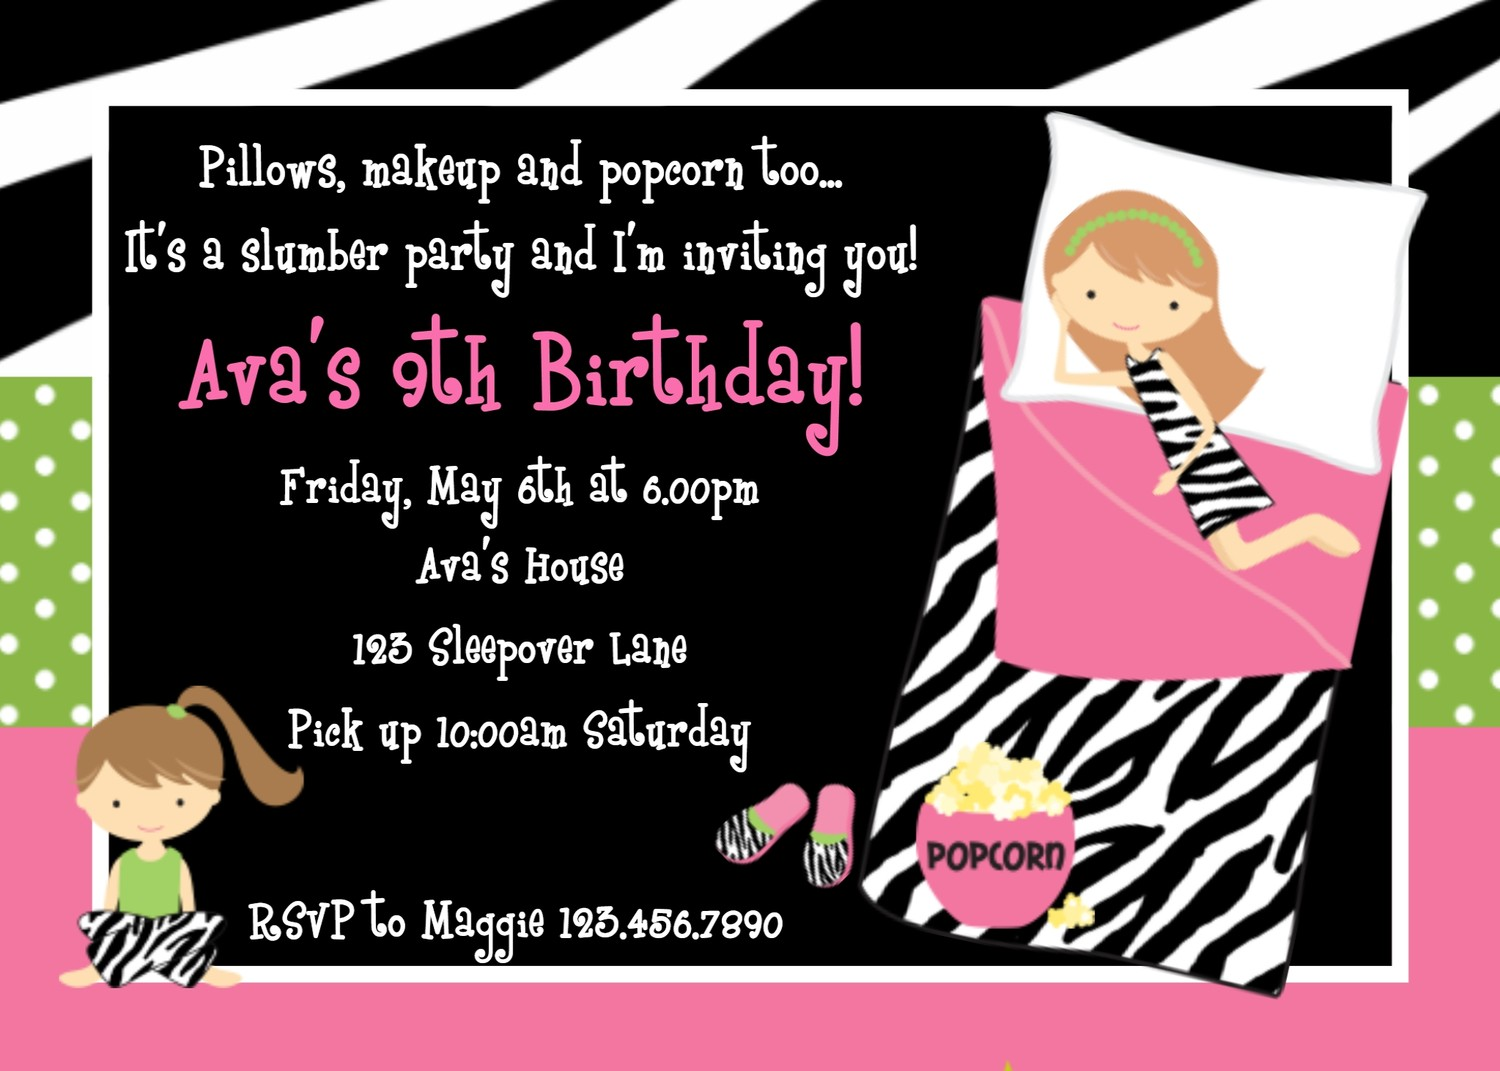 Sleepover Invitations Peellandfmtk - Graduation party invitations ideas